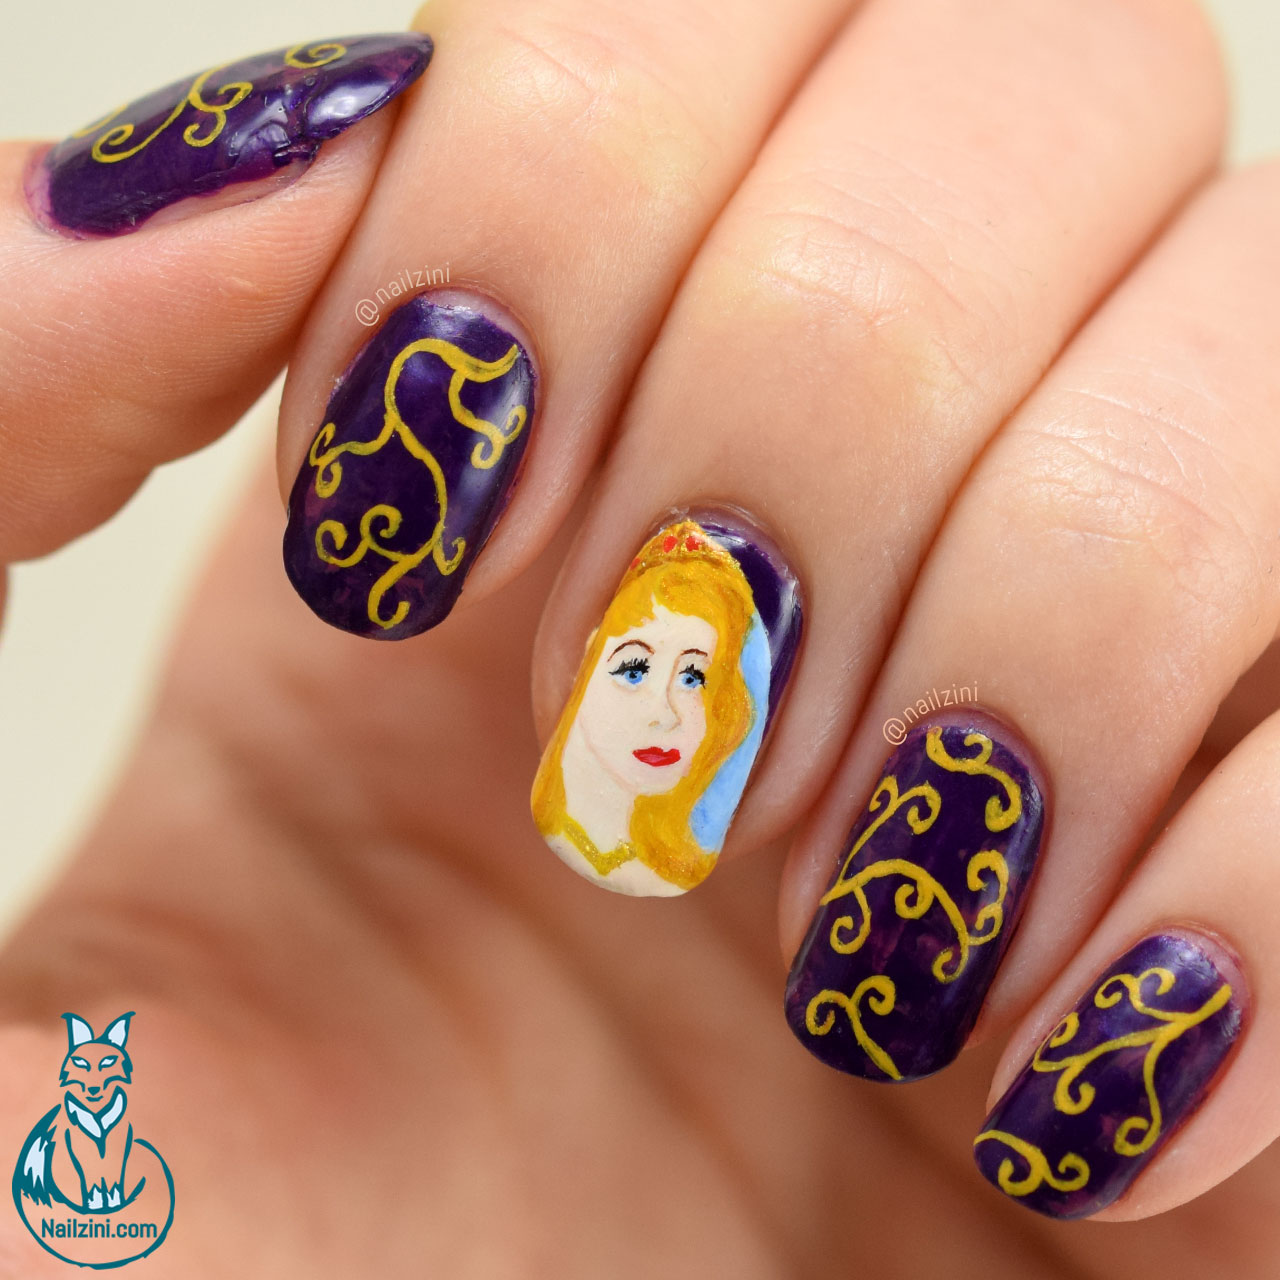 The sleeping beauty - Aurora Nail Art Nailzini